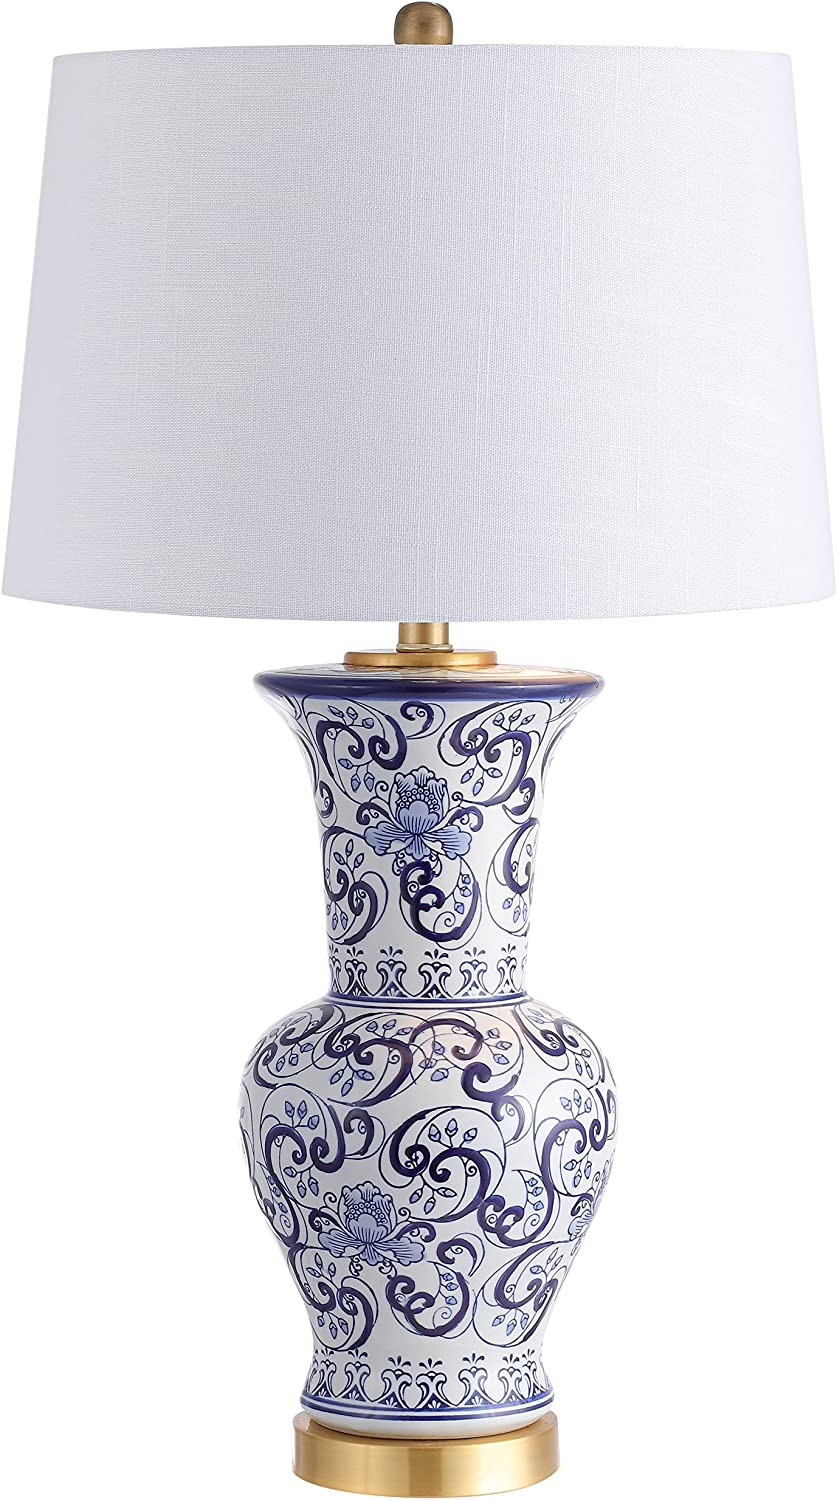 "JONATHAN Y JYL5014A Leo 28.5"" Chinoiserie LED Table Lamp Classic,Cottage,Traditional,Transitional for Bedroom, Living Room, Office, College Dorm, Coffee Table, Bookcase, Blue/White"